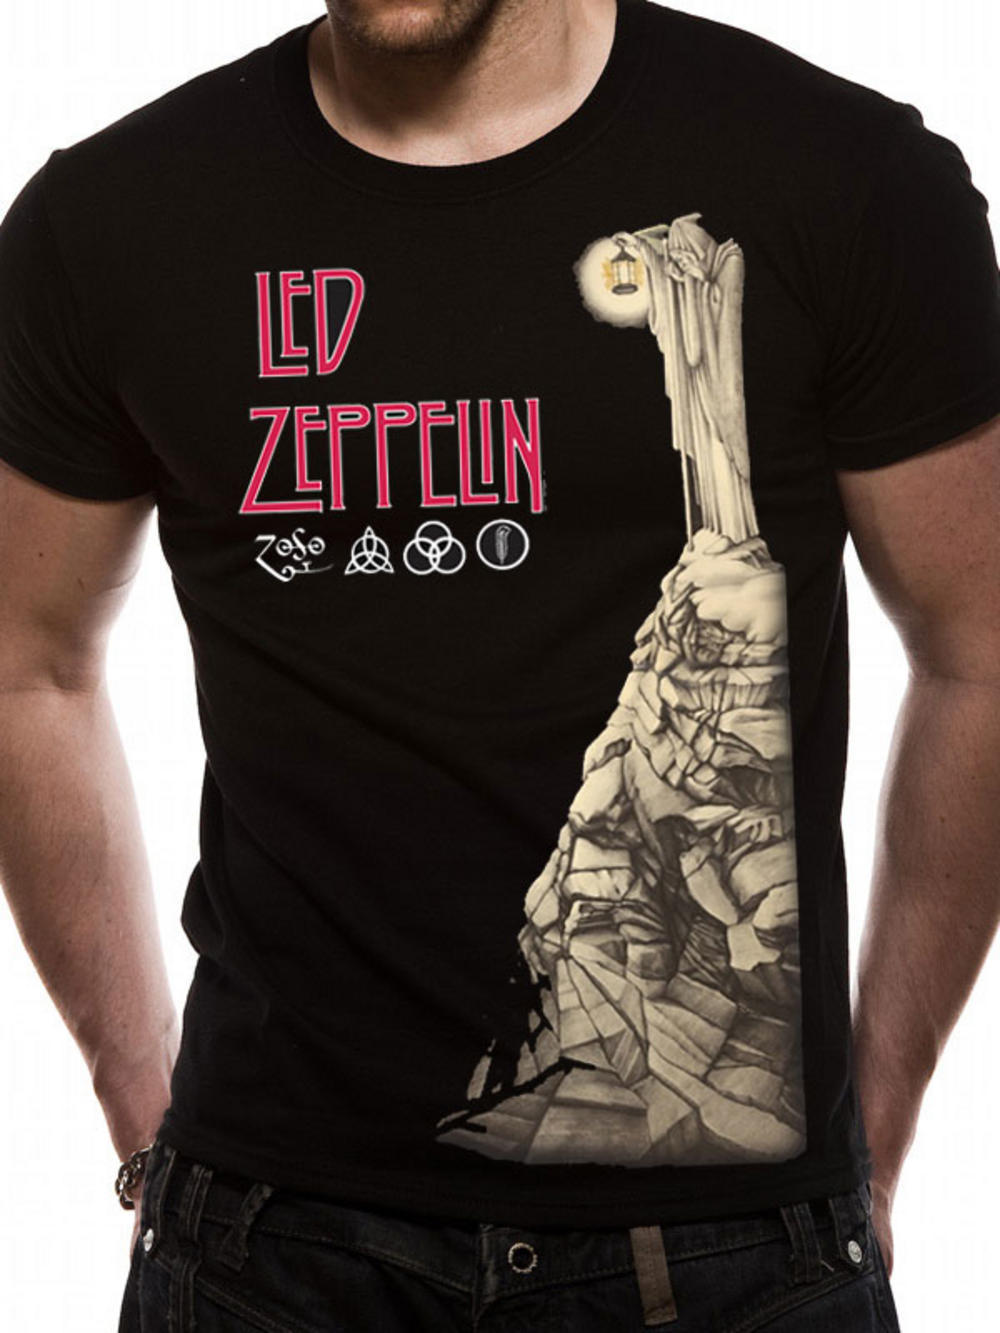 led zeppelin hermit official tee music merchandise led zeppelin merchandise. Black Bedroom Furniture Sets. Home Design Ideas